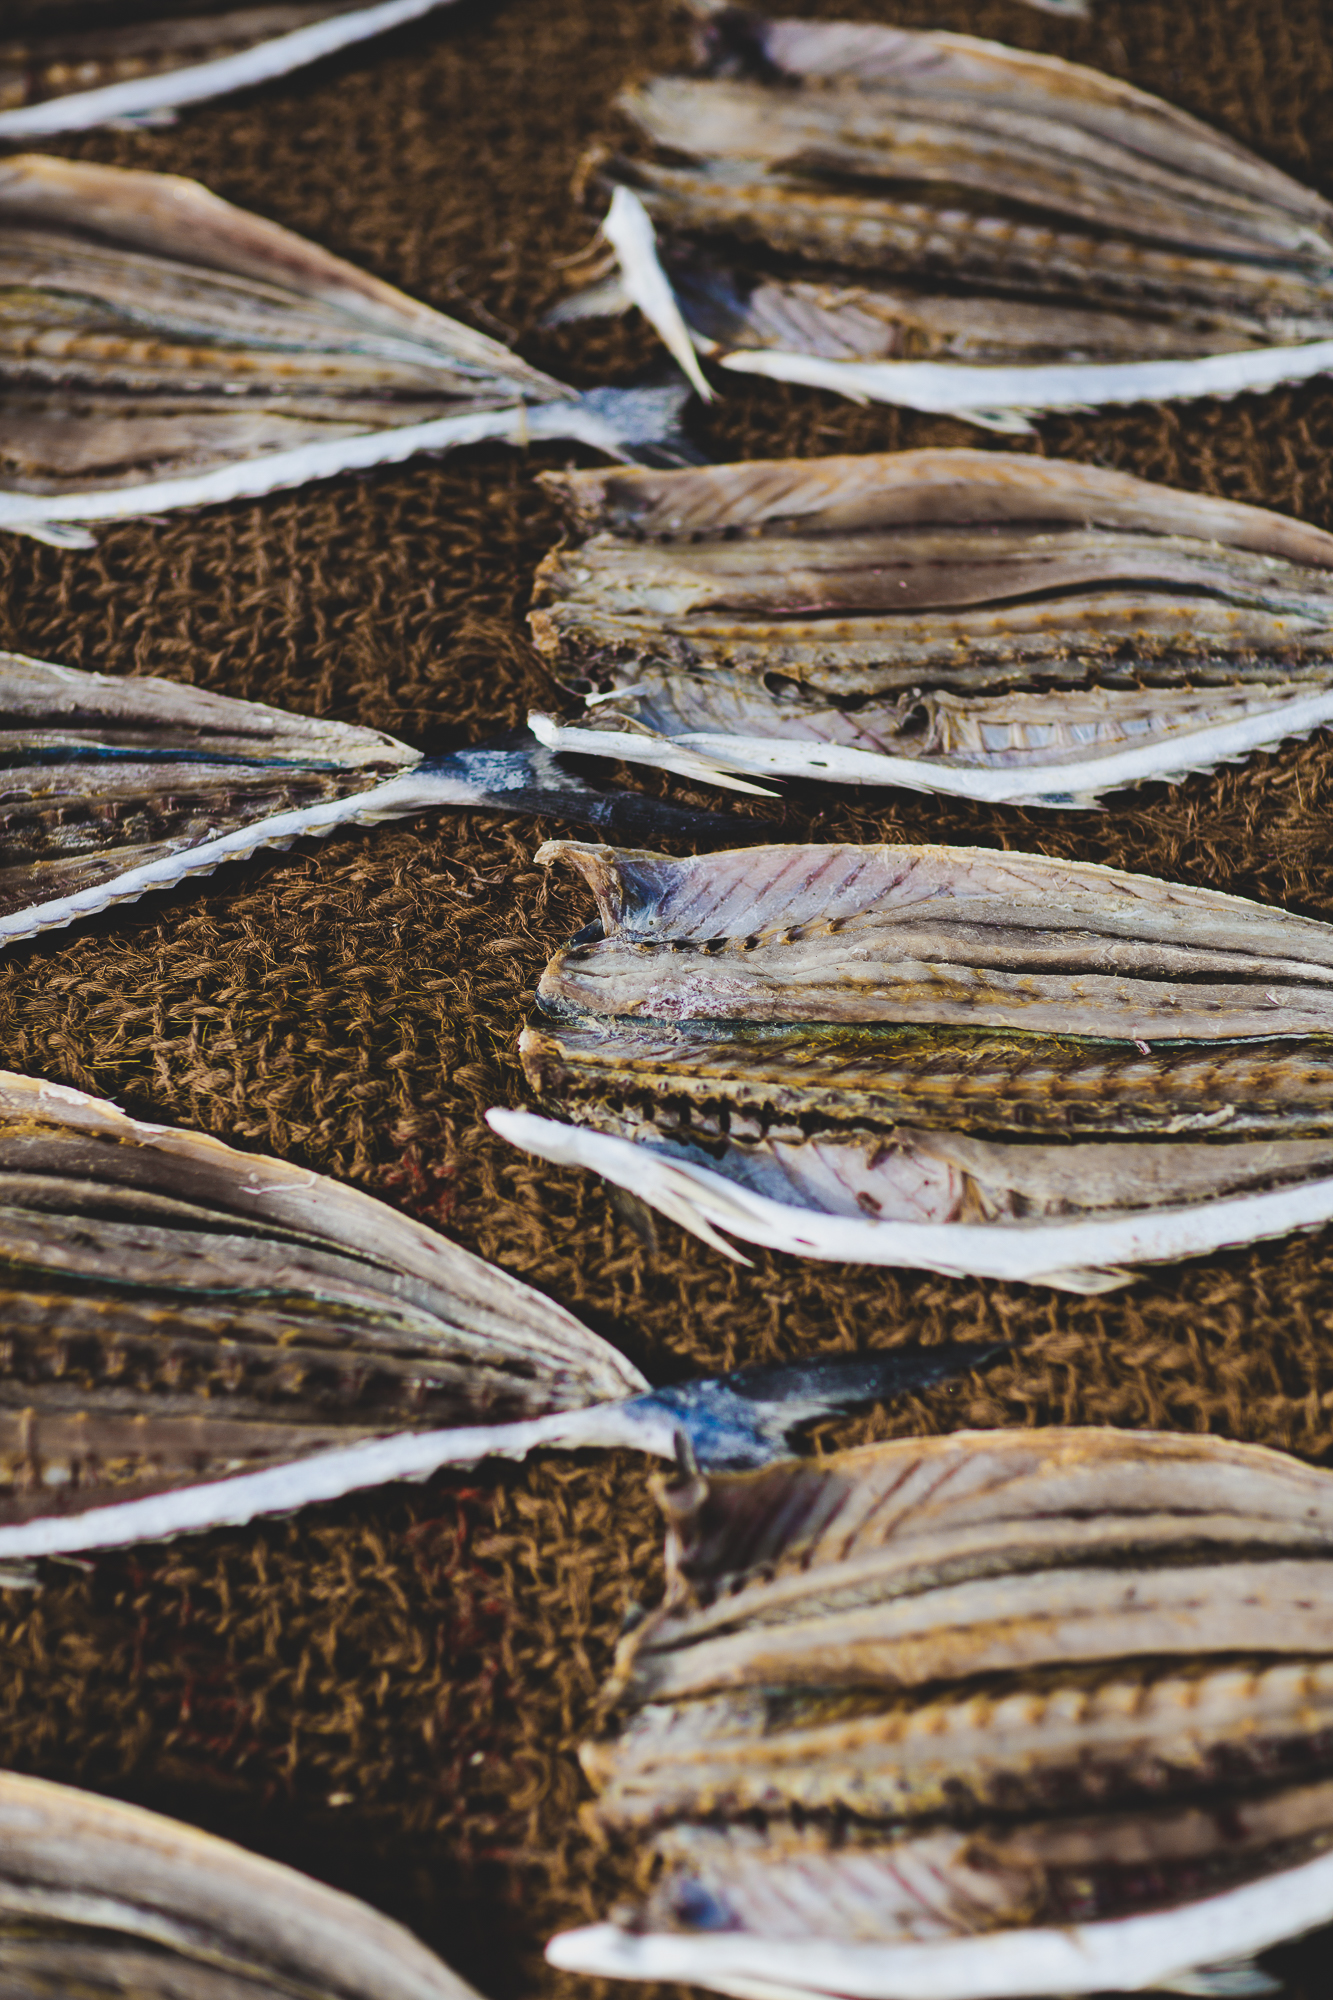 Descaled fish drying